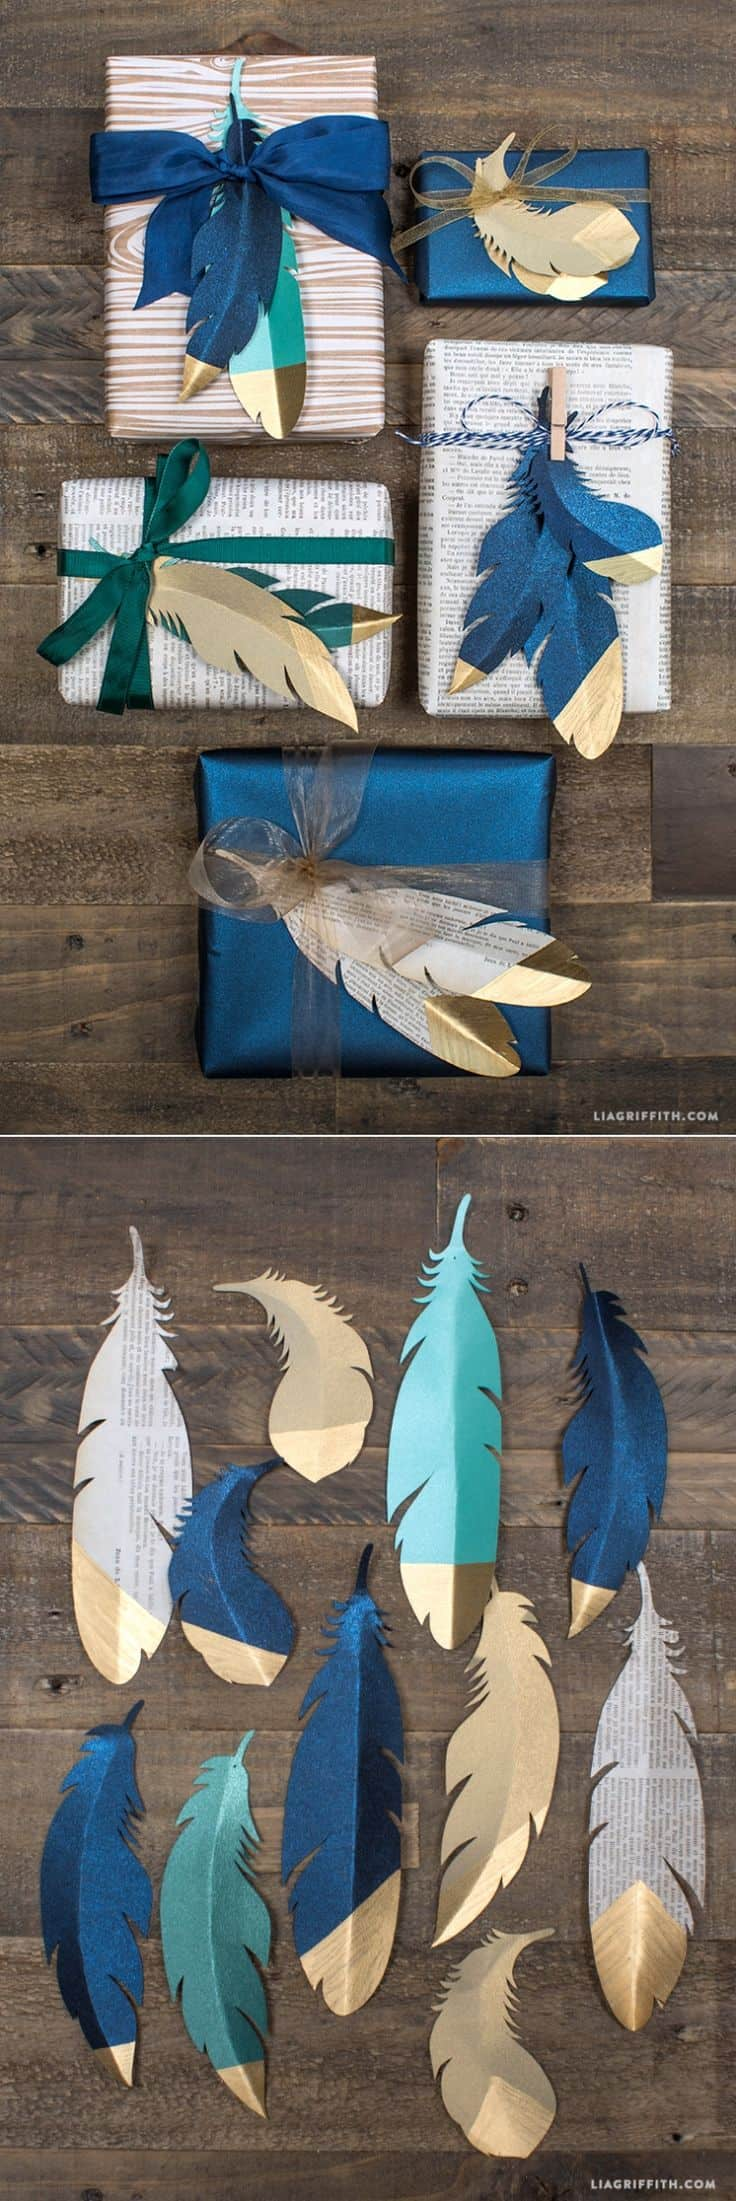 Find Inspiration In Top 27 Exquisite DIY Gift Ideas homesthetics (3)